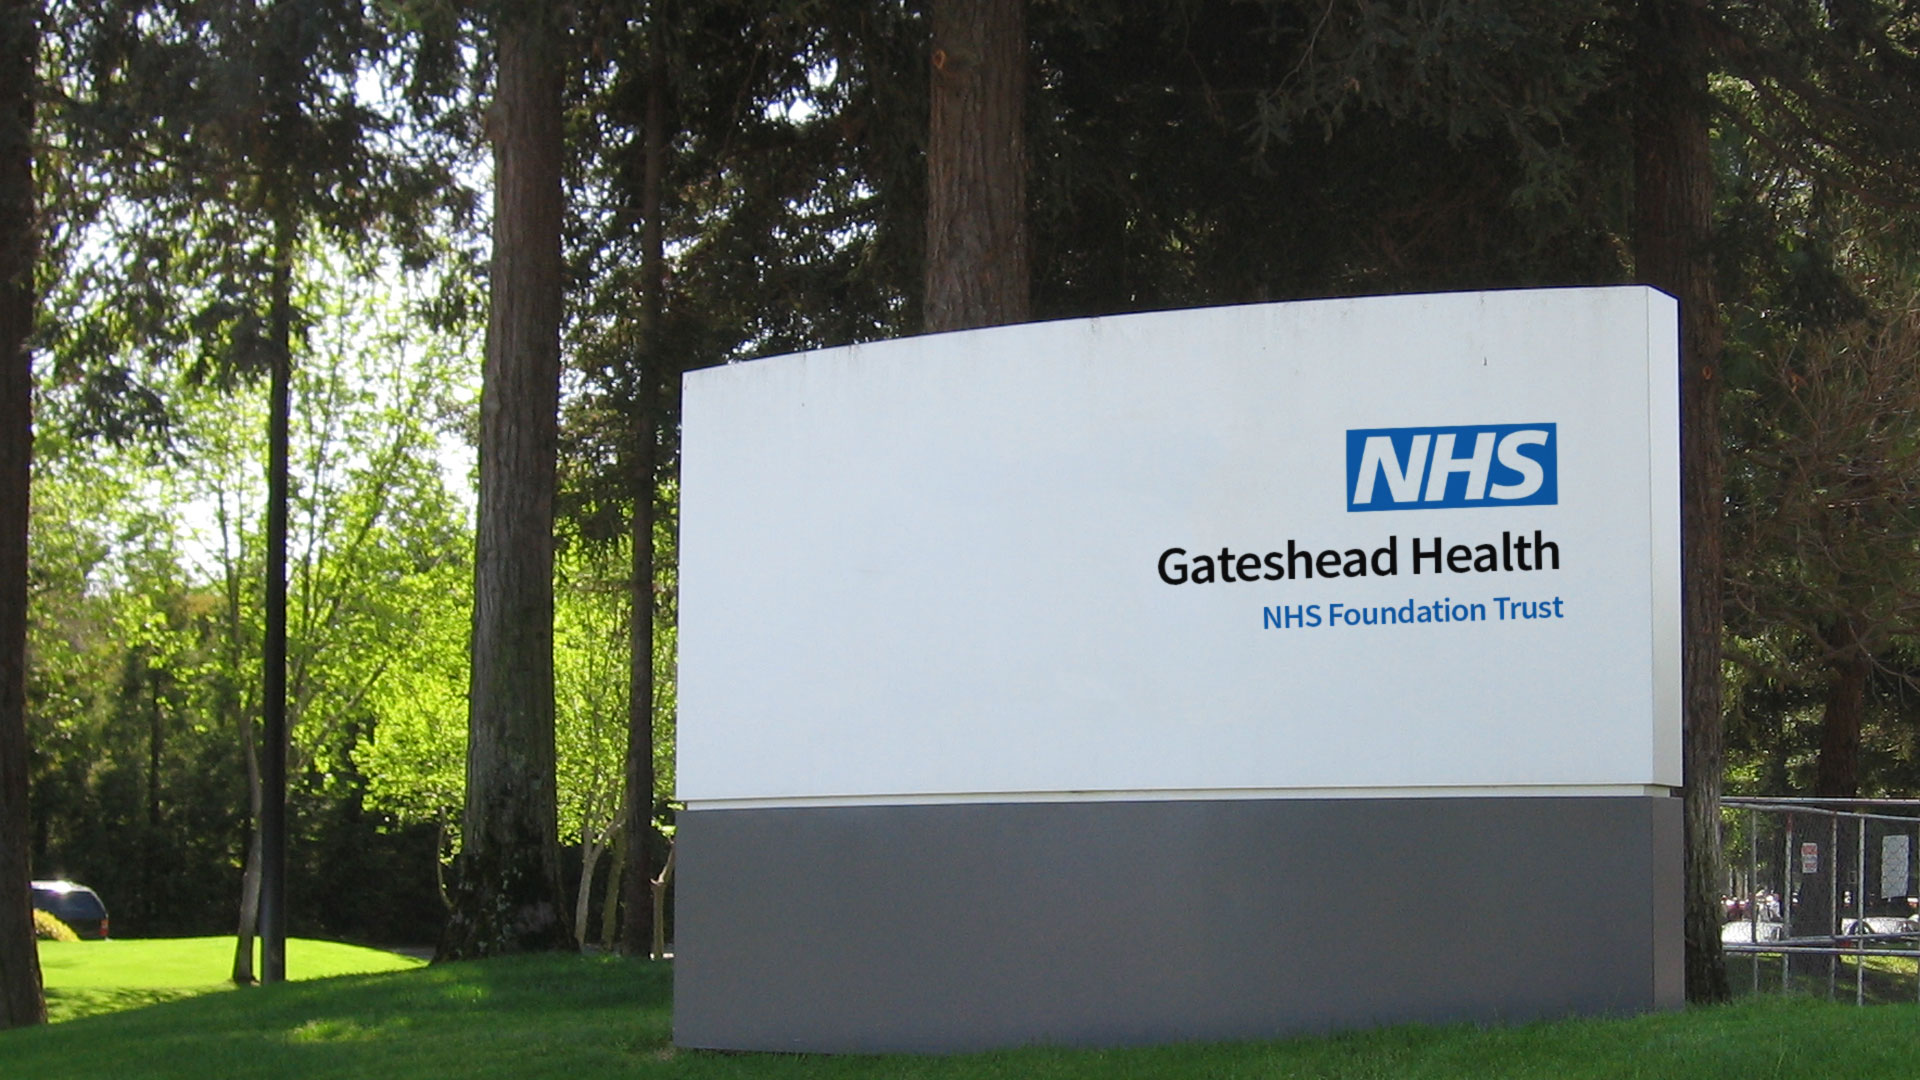 Gateshead Health NHS Foundation Trust